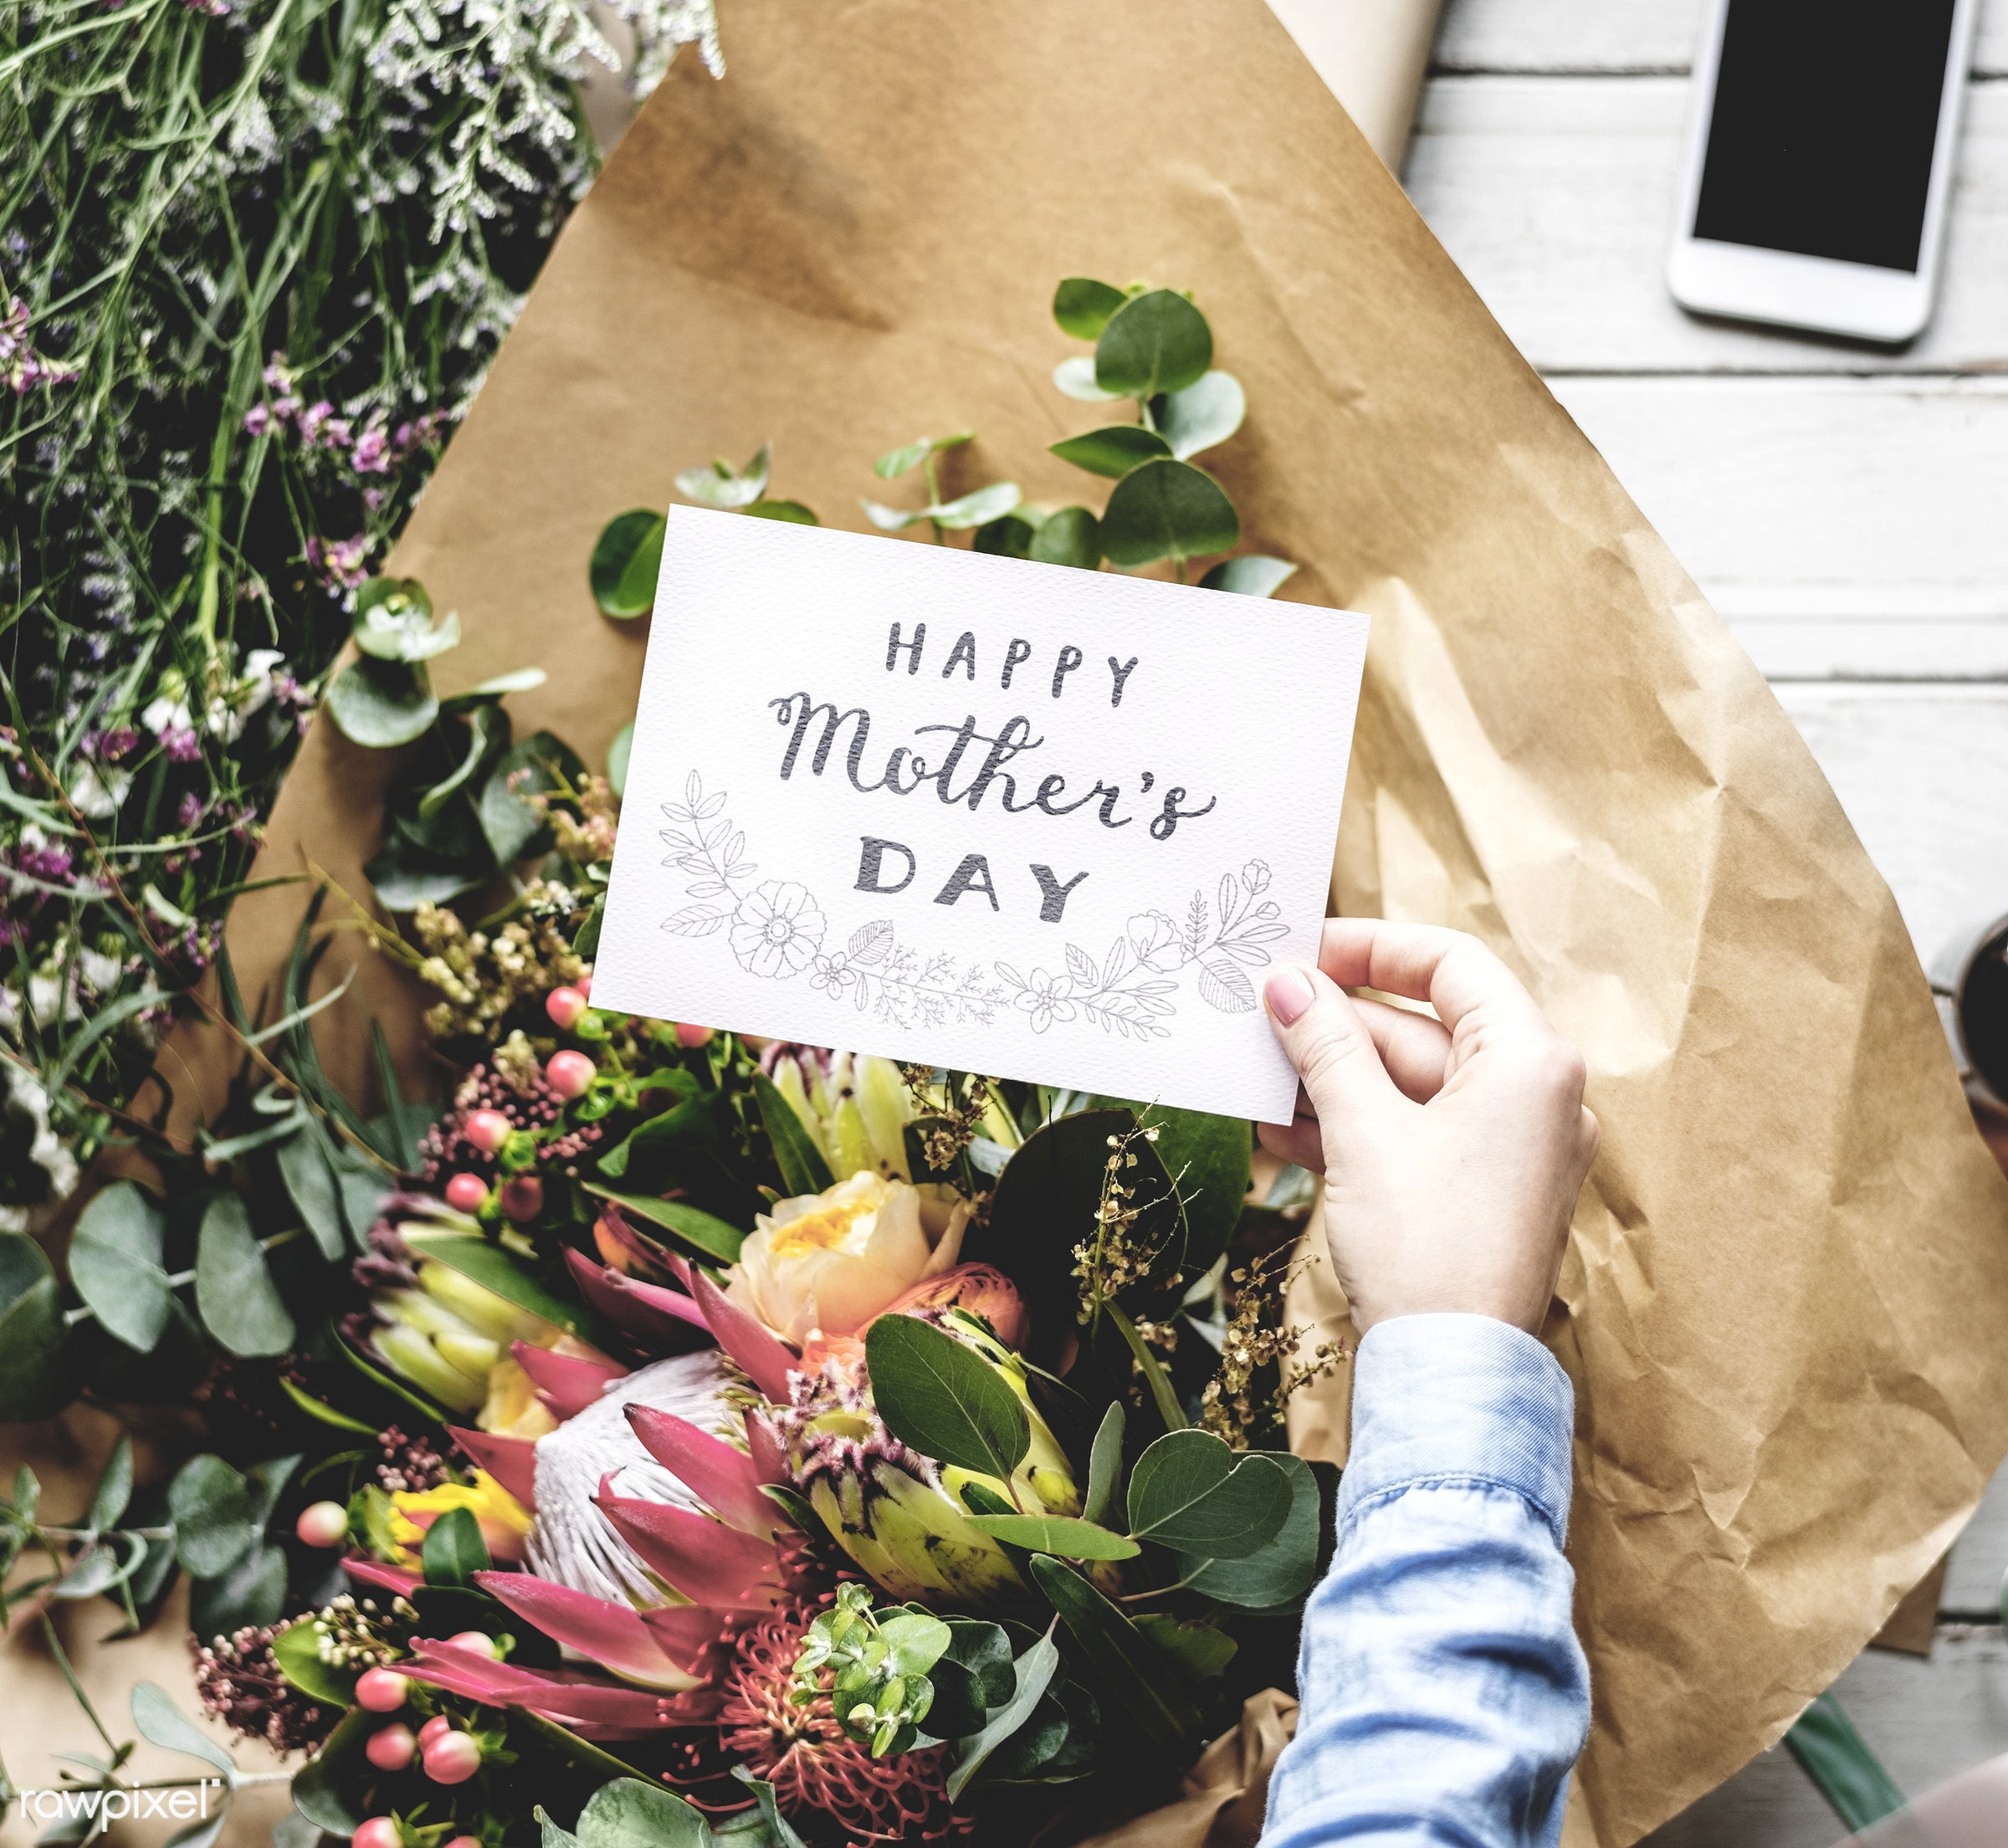 shop, bouquet, detail, person, merchandise, wish, people, decor, nature, card, flowers, work, refreshment, hold, career,...